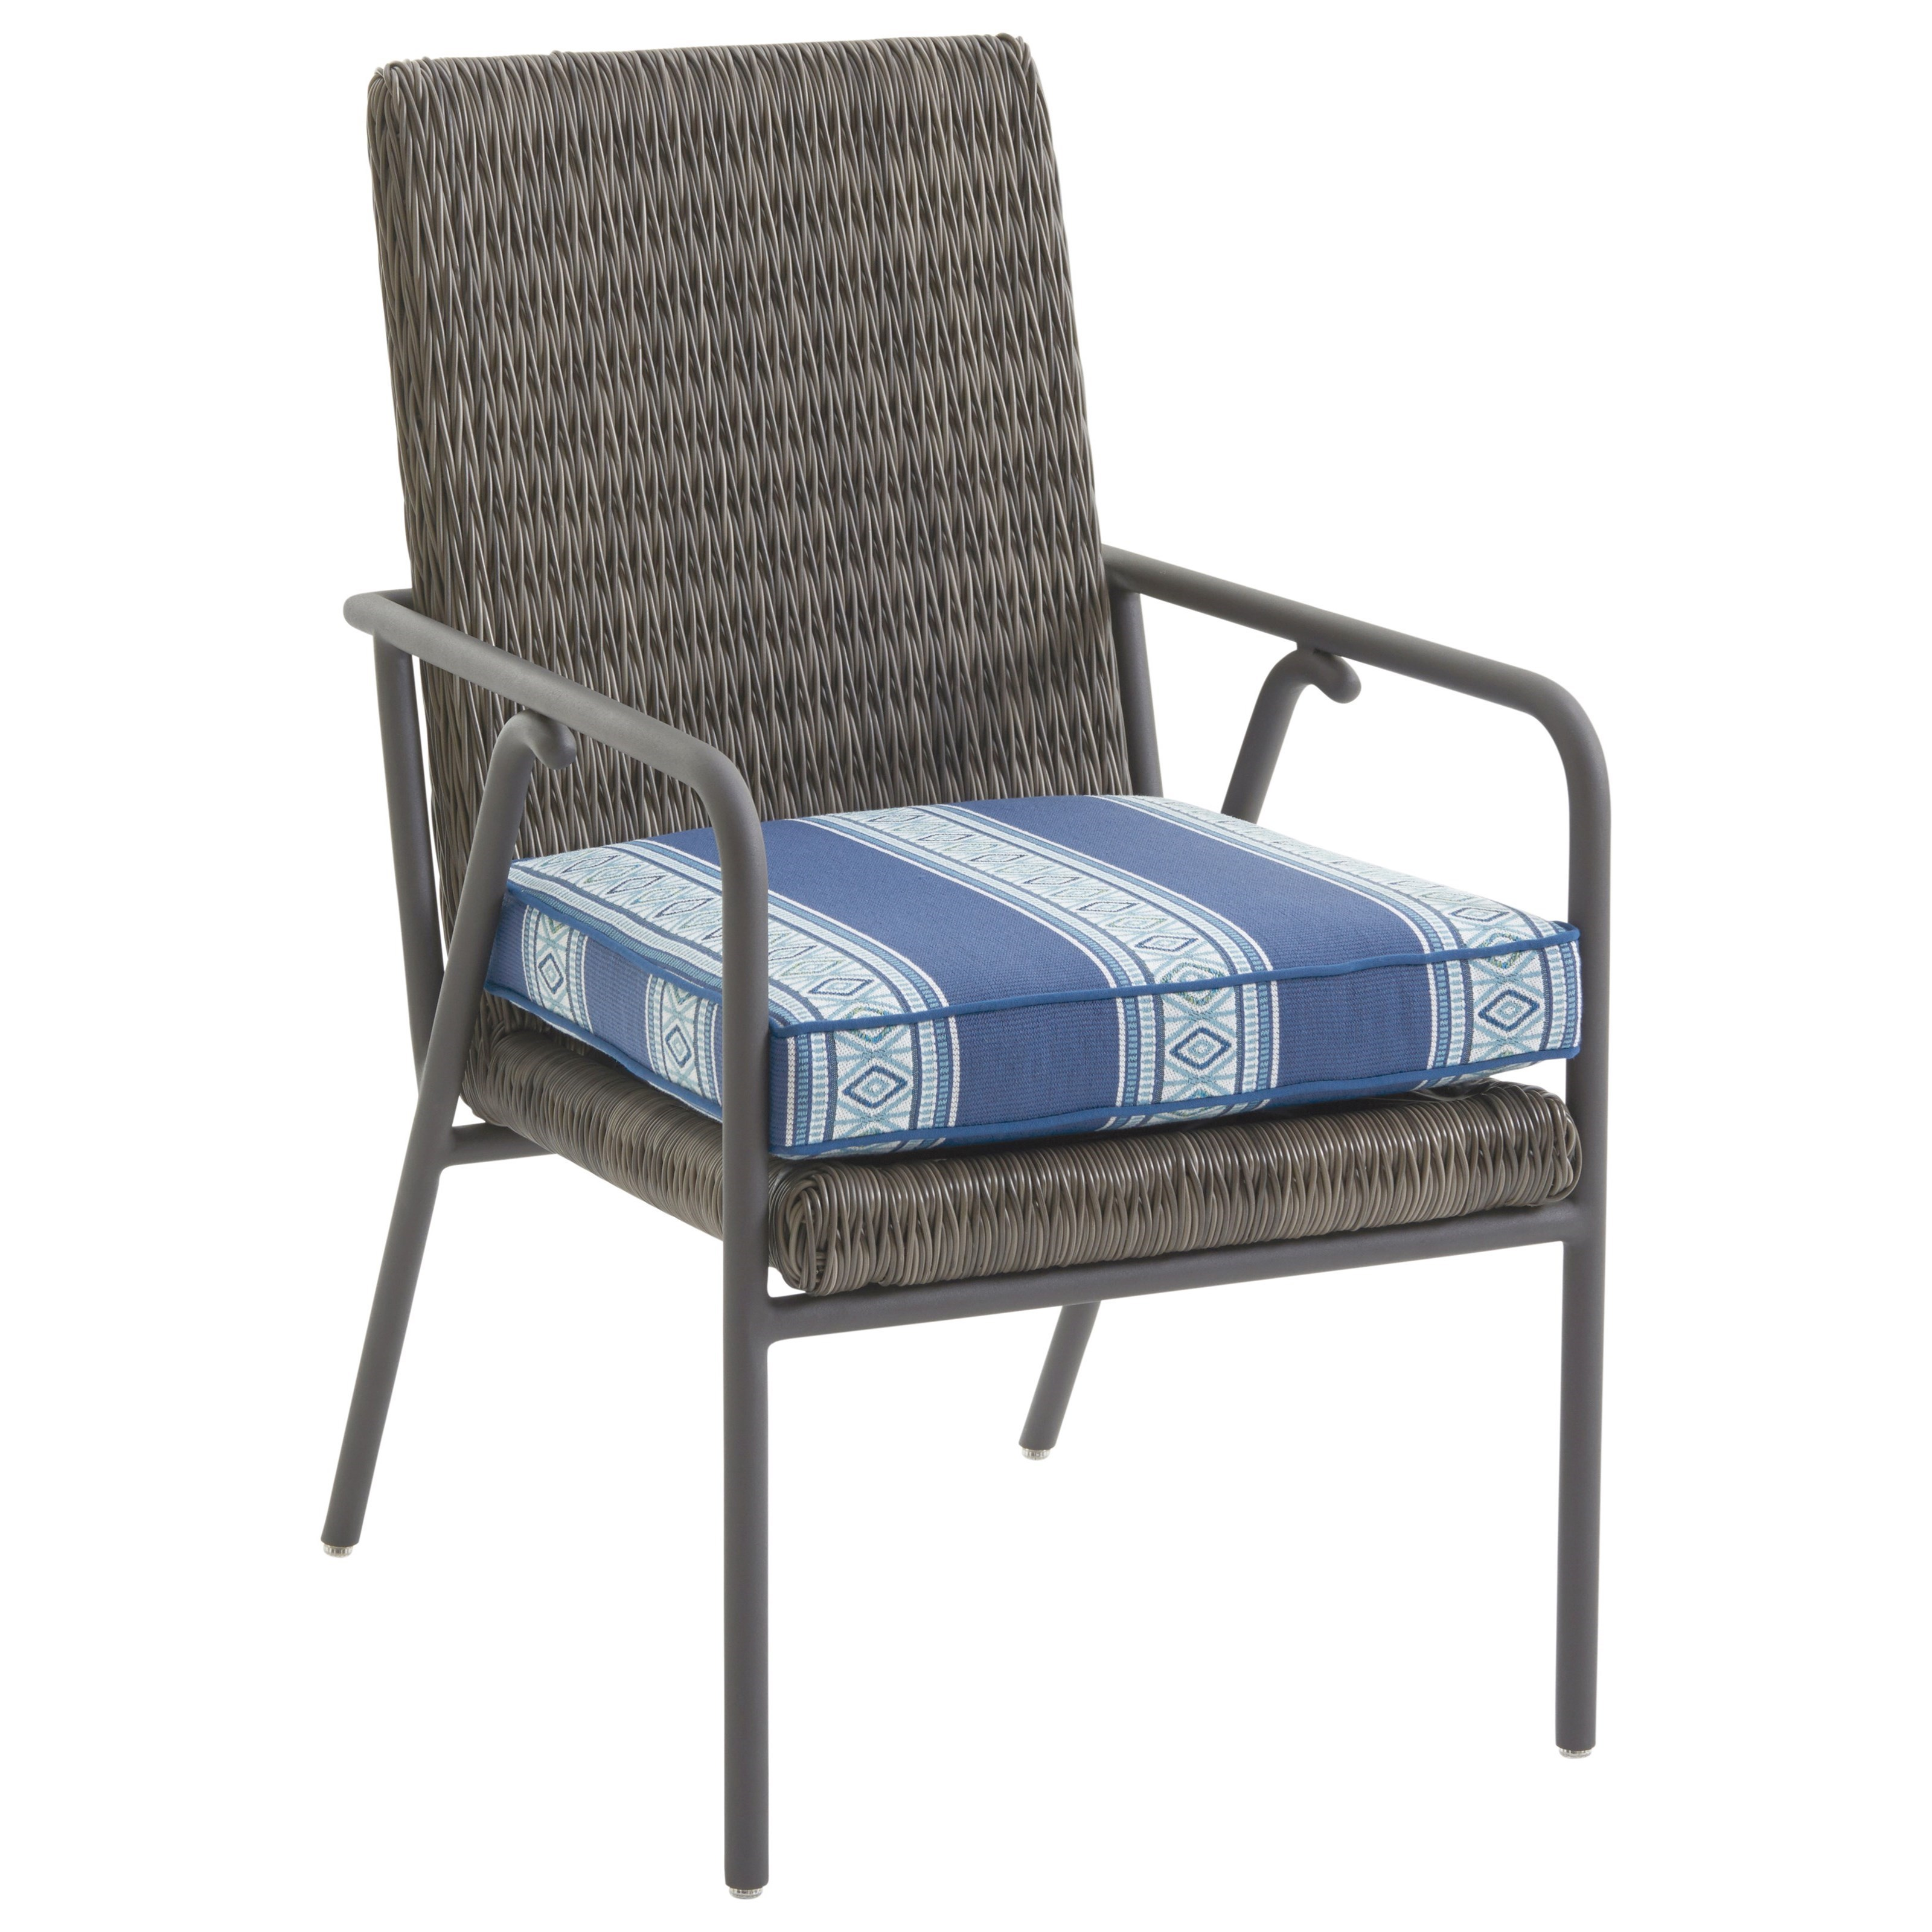 Cypress Point Ocean Terrace Small Outdoor Dining Chair by Tommy Bahama Outdoor Living at Baer's Furniture